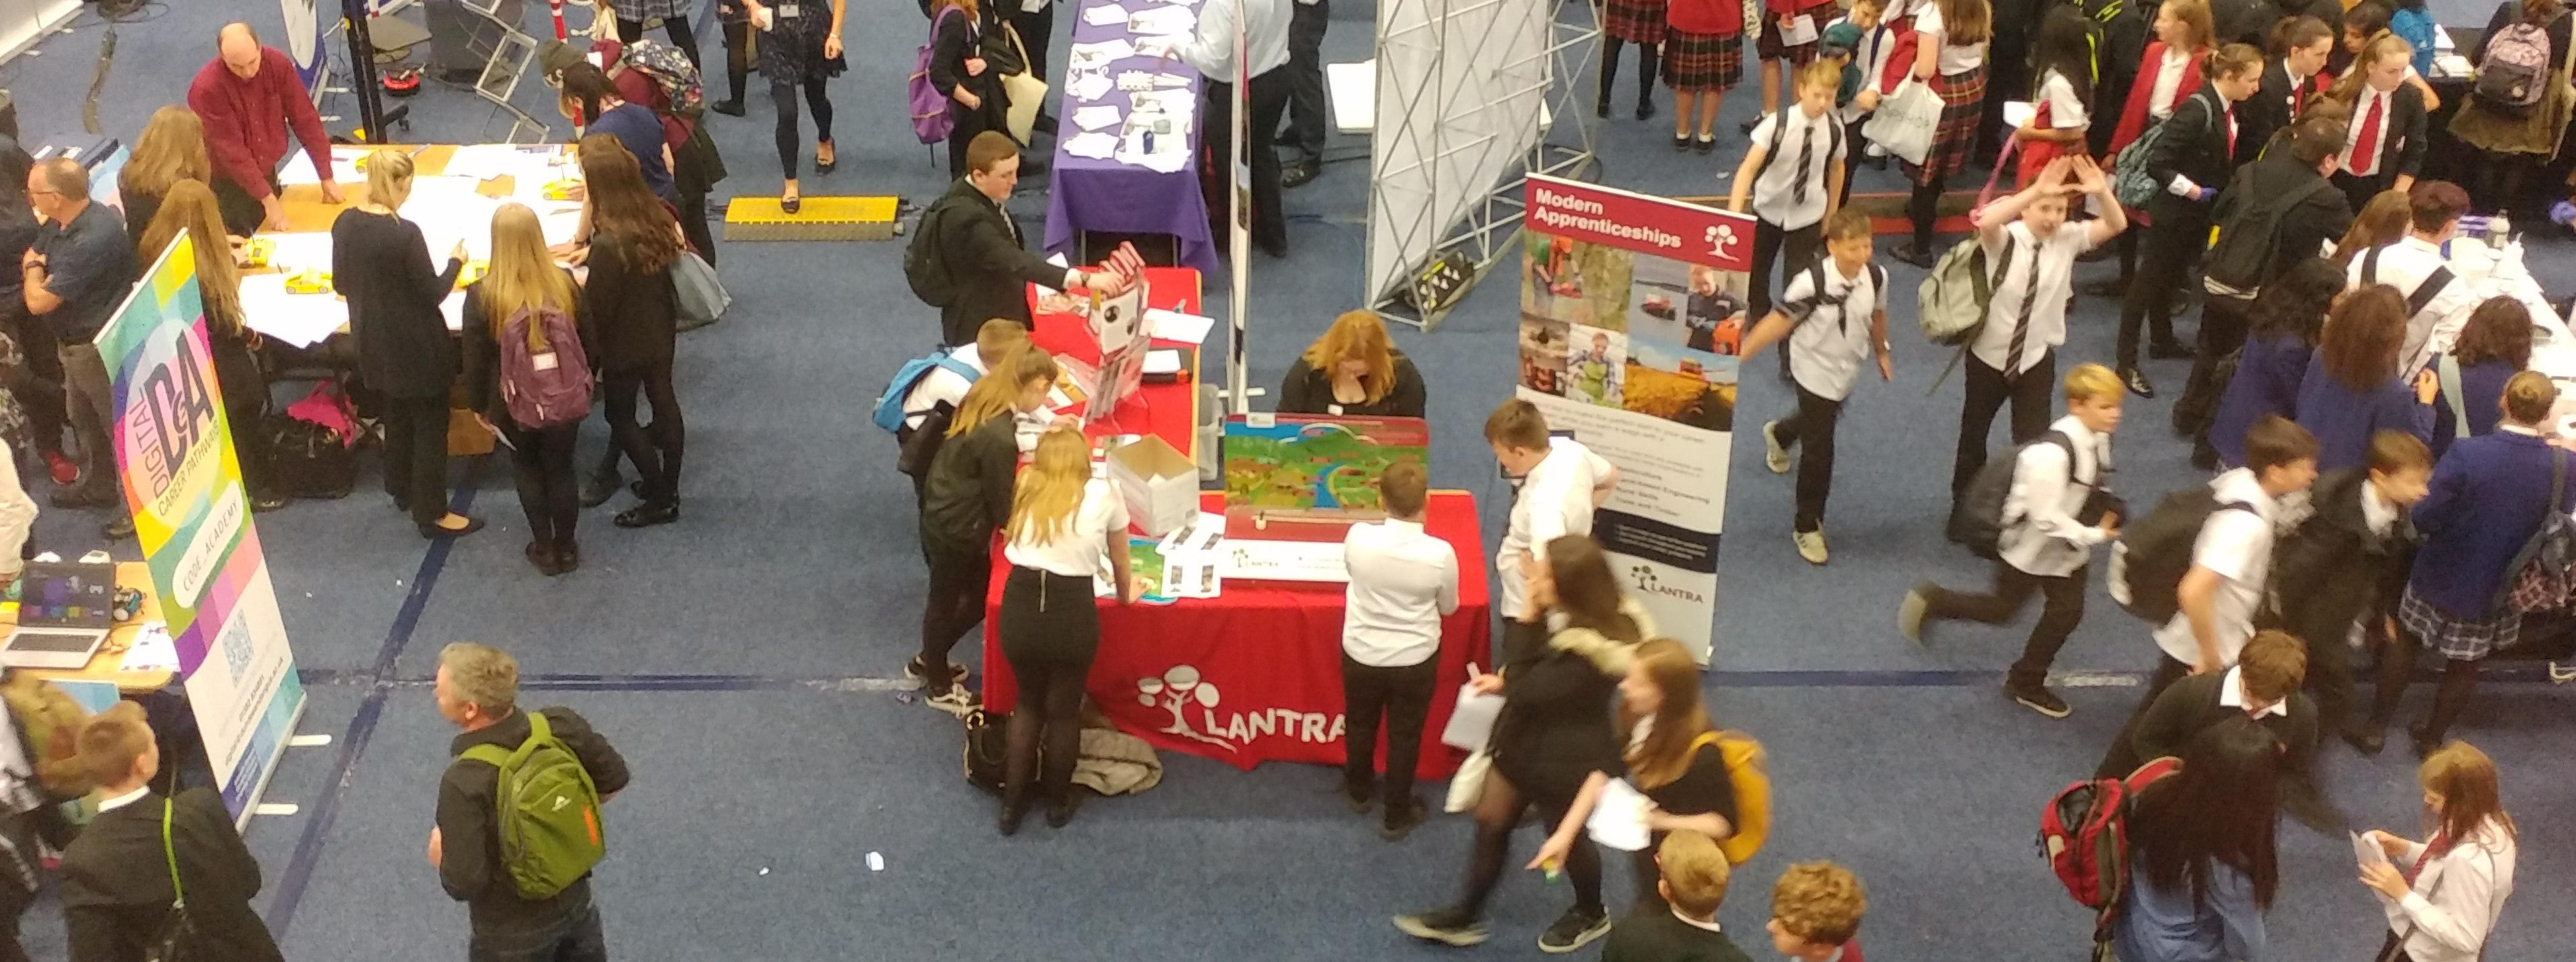 Lantra stand at careers event